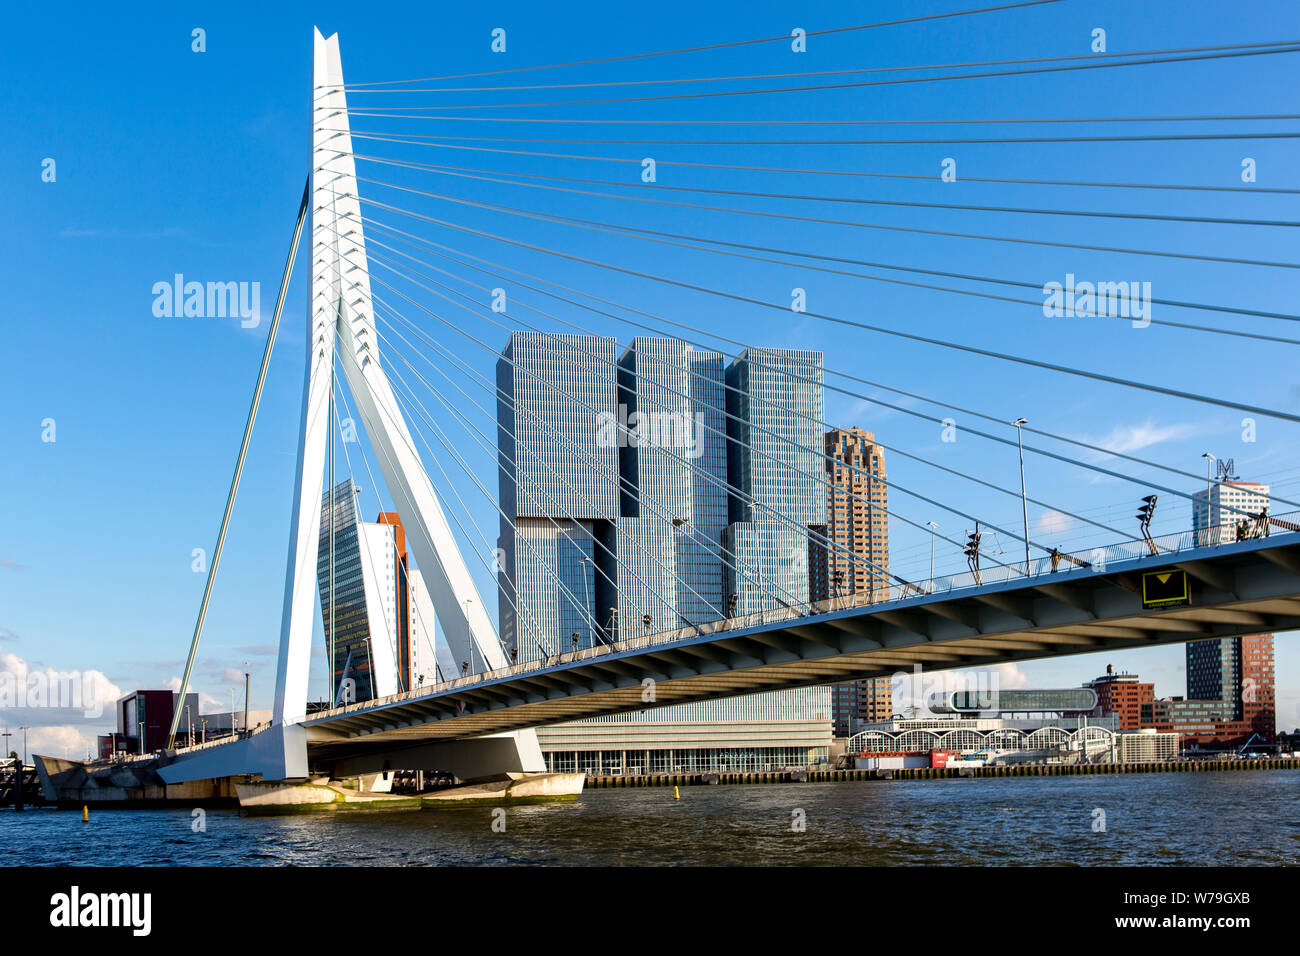 Cityscape of Rotterdam at sunset with the Erasmus bridge in the foreground and high rise buildings of the financial district in the Dutch city Stock Photo